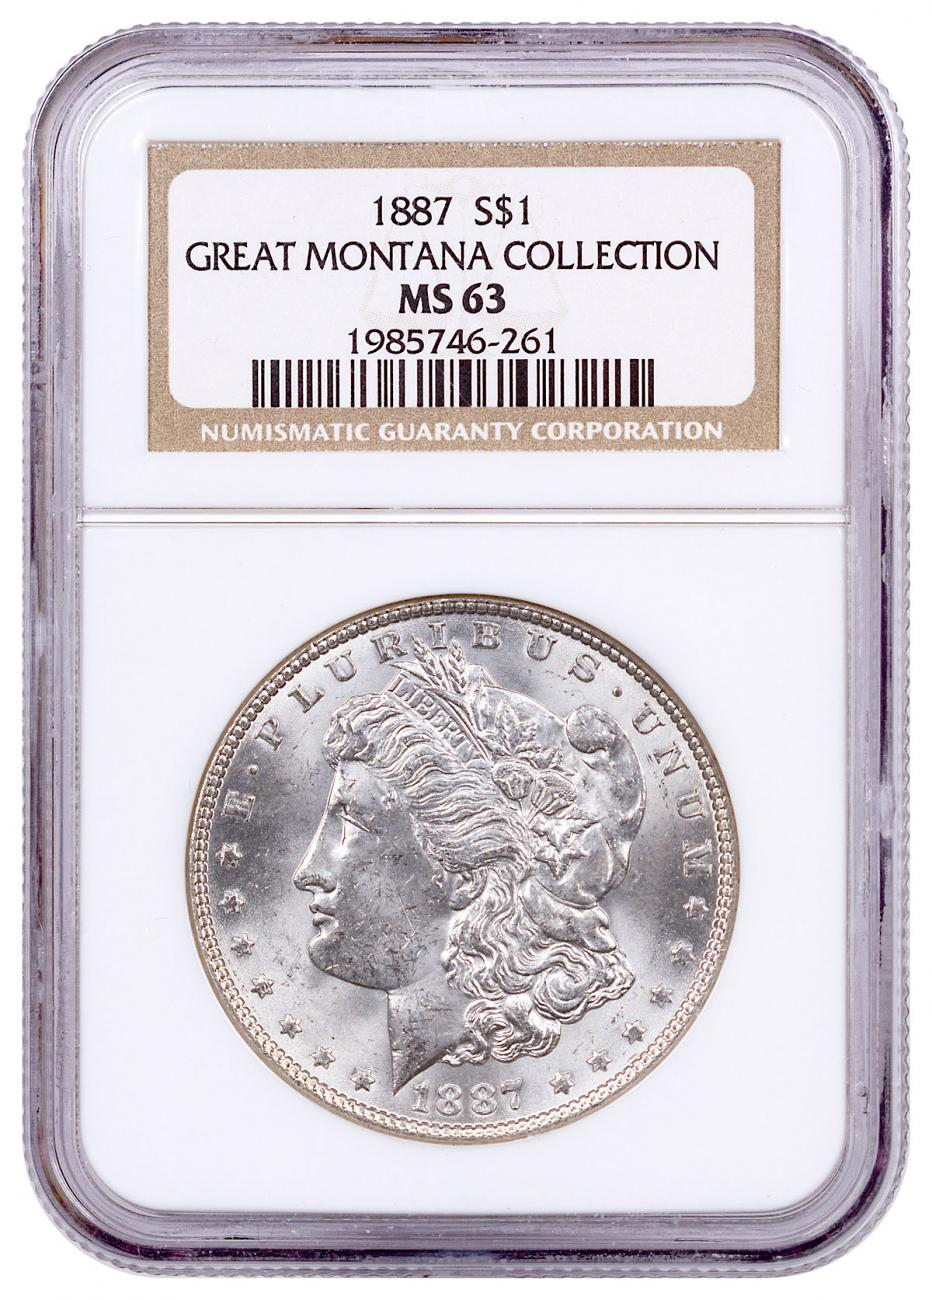 1887 Morgan Silver Dollar From the Great Montana Collection NGC MS63